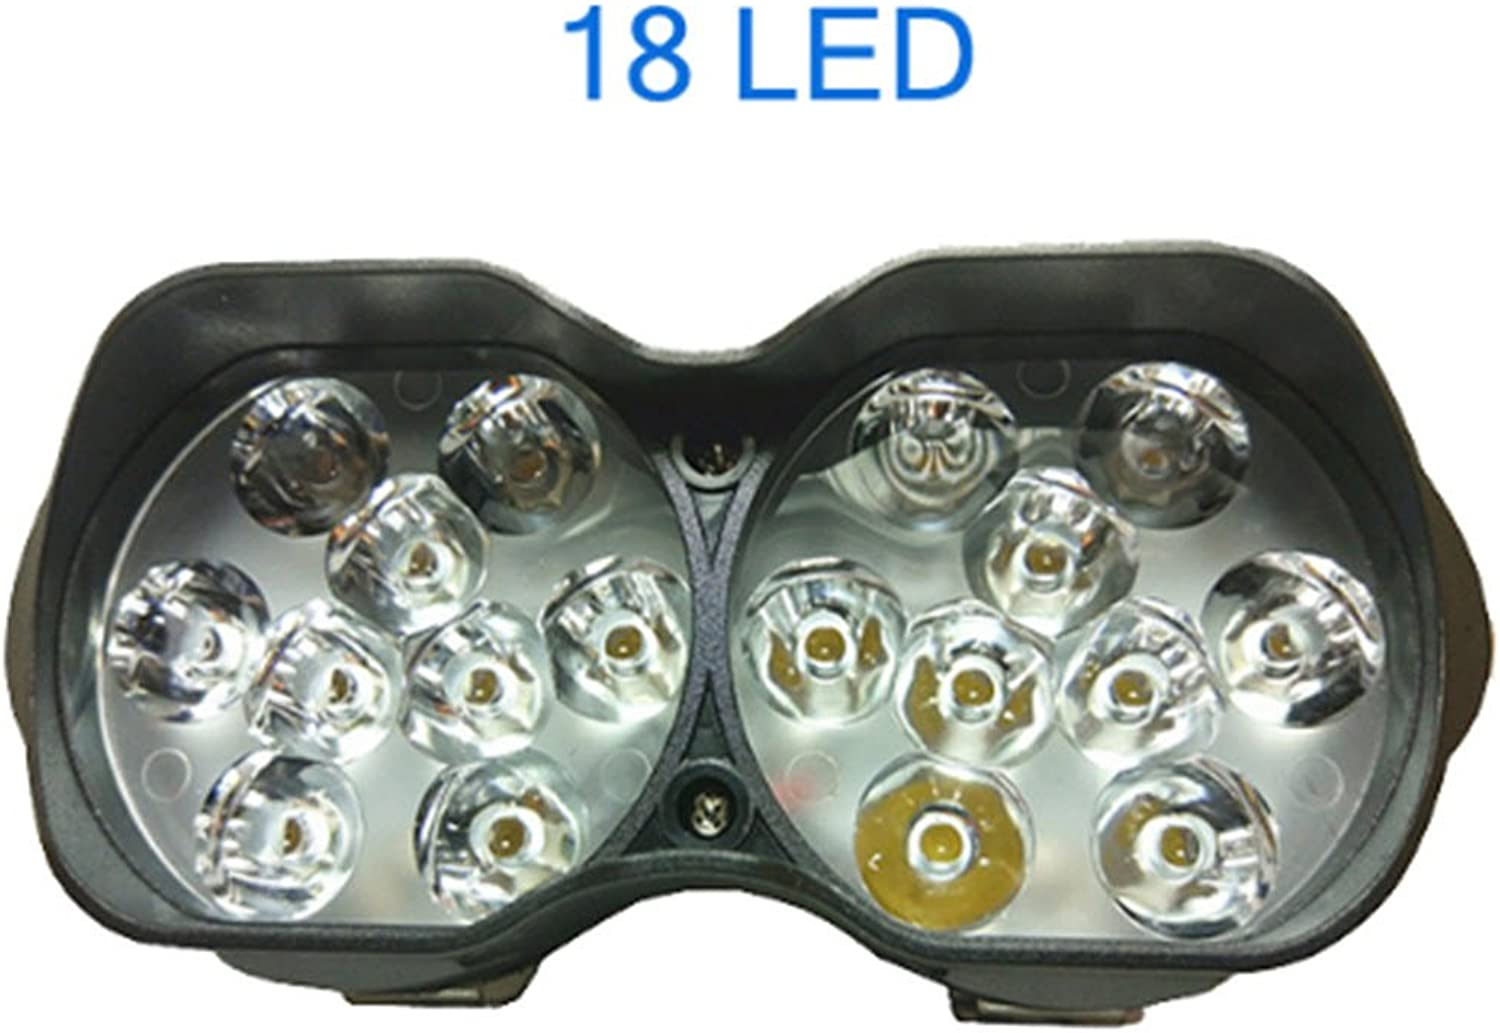 Scooter Super Bright 1500lm Motorcycles Led Headlight Fog Spotlight DRL Working lamp Motorcycle Accessories 12V 6500K